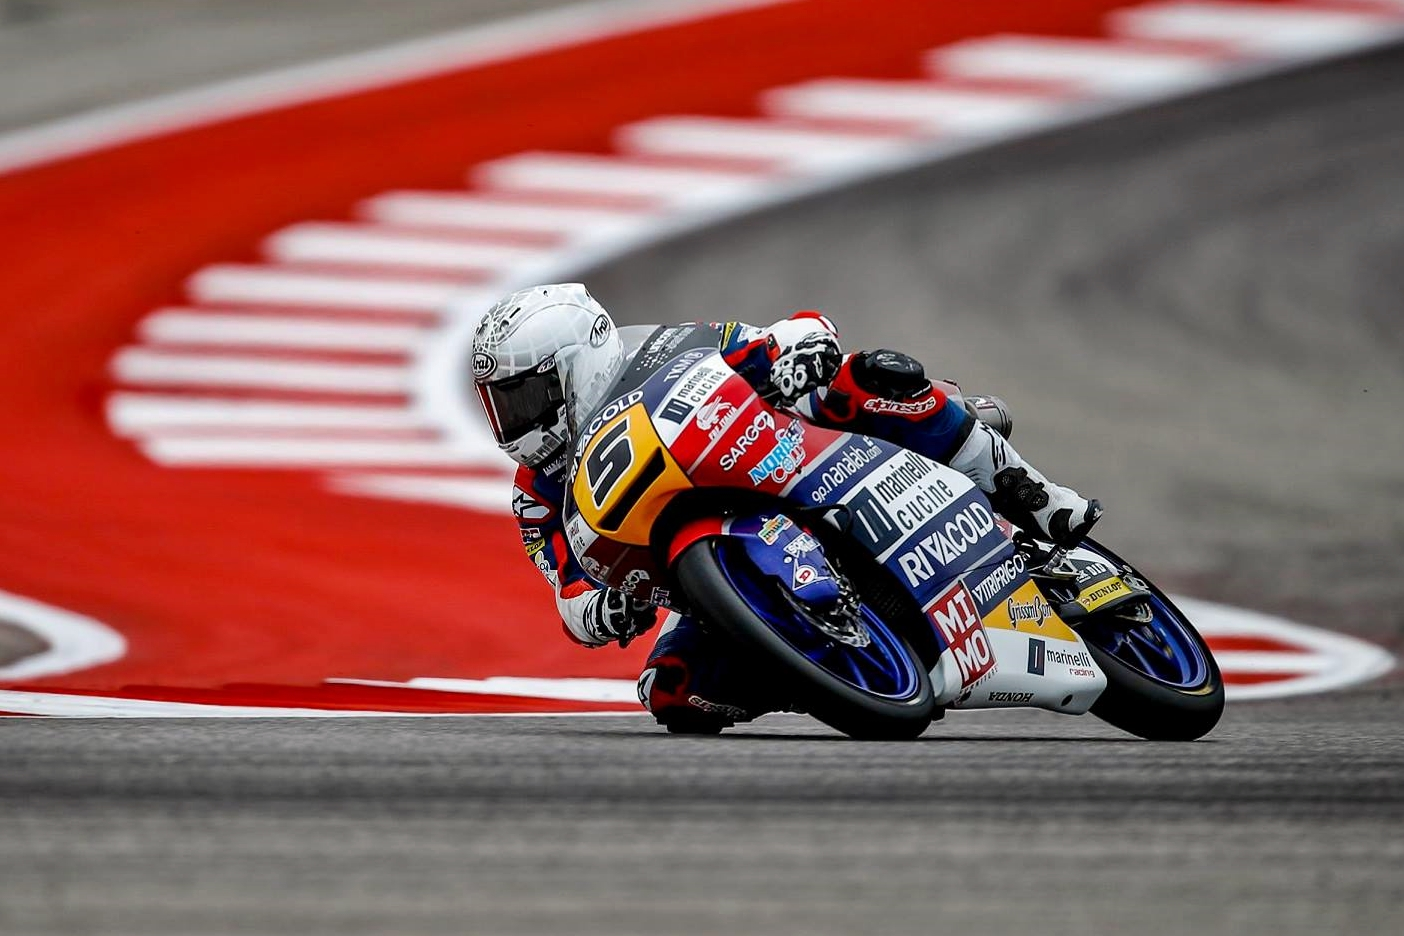 Motogp Austin Carrera | MotoGP 2017 Info, Video, Points Table